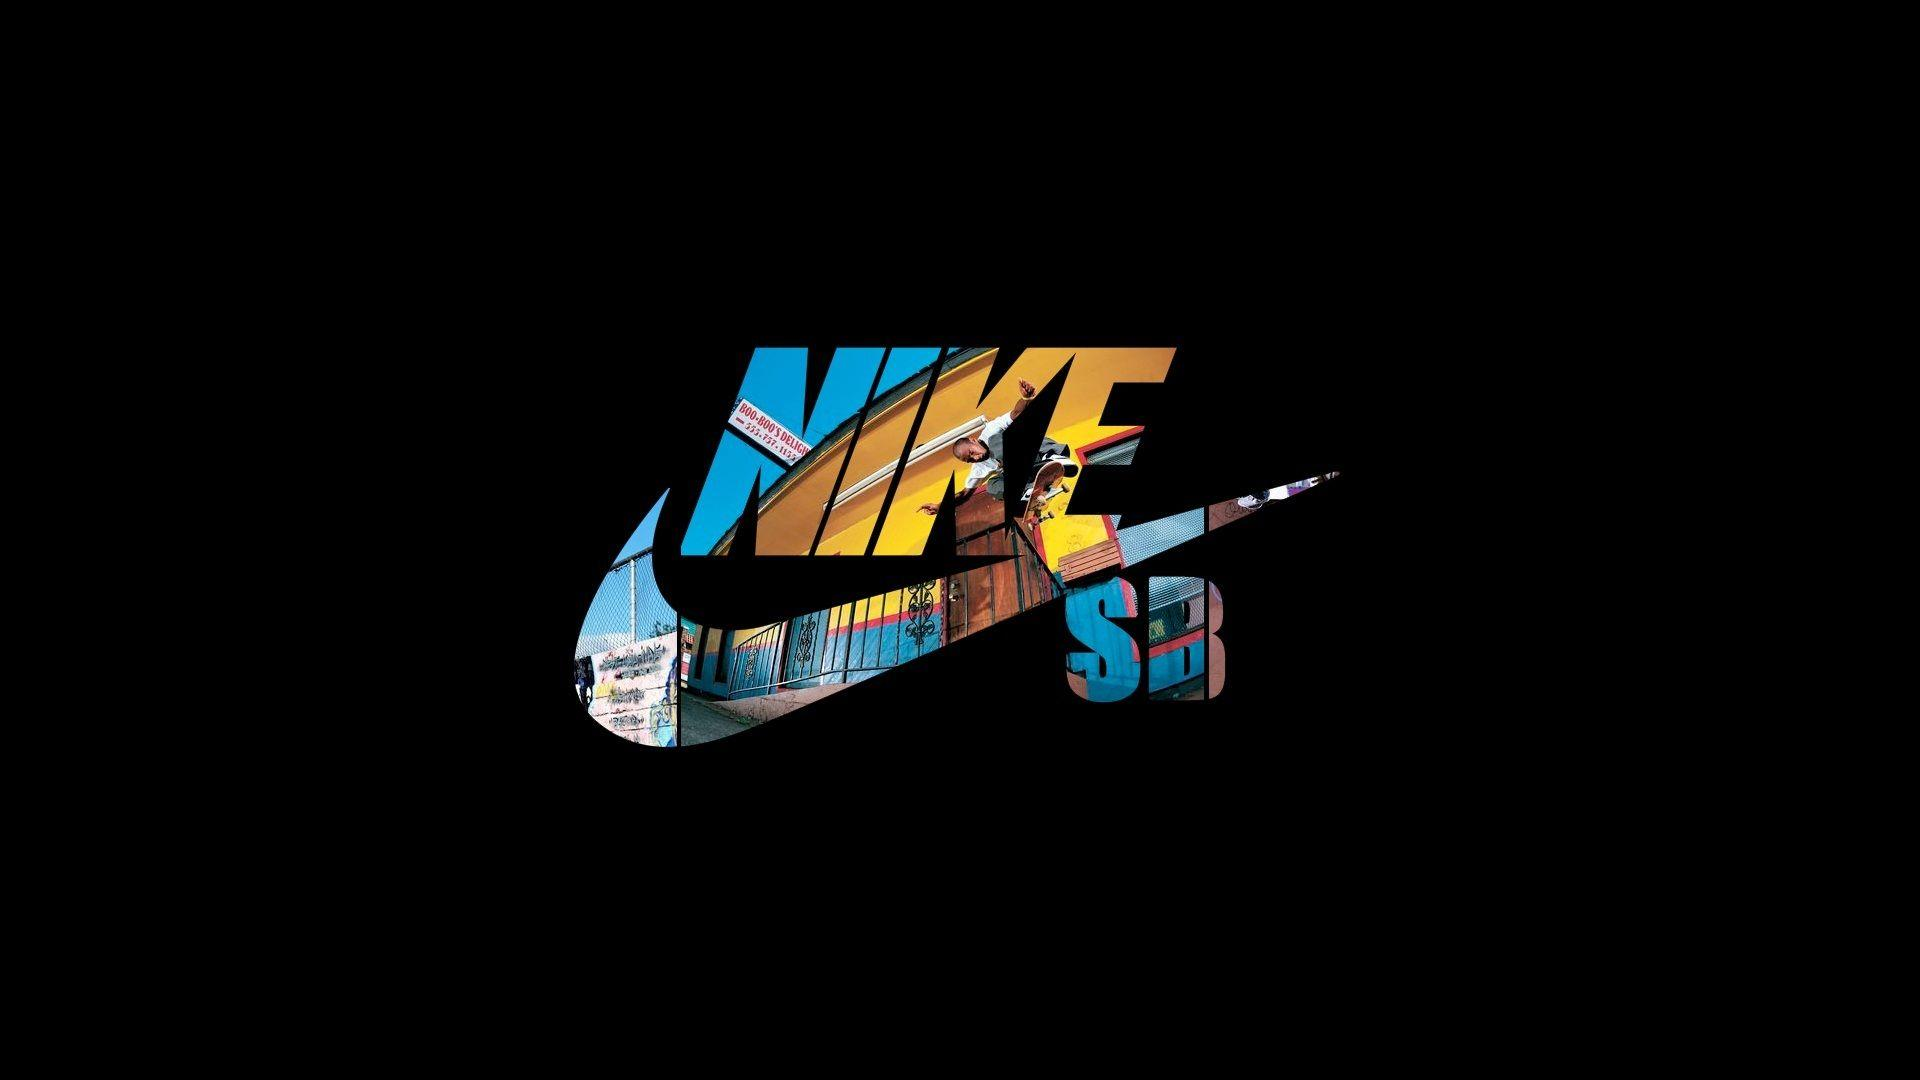 Hd wallpaper nike - Nike Pc Hd Wallpapers Hd Wallpapers Inn